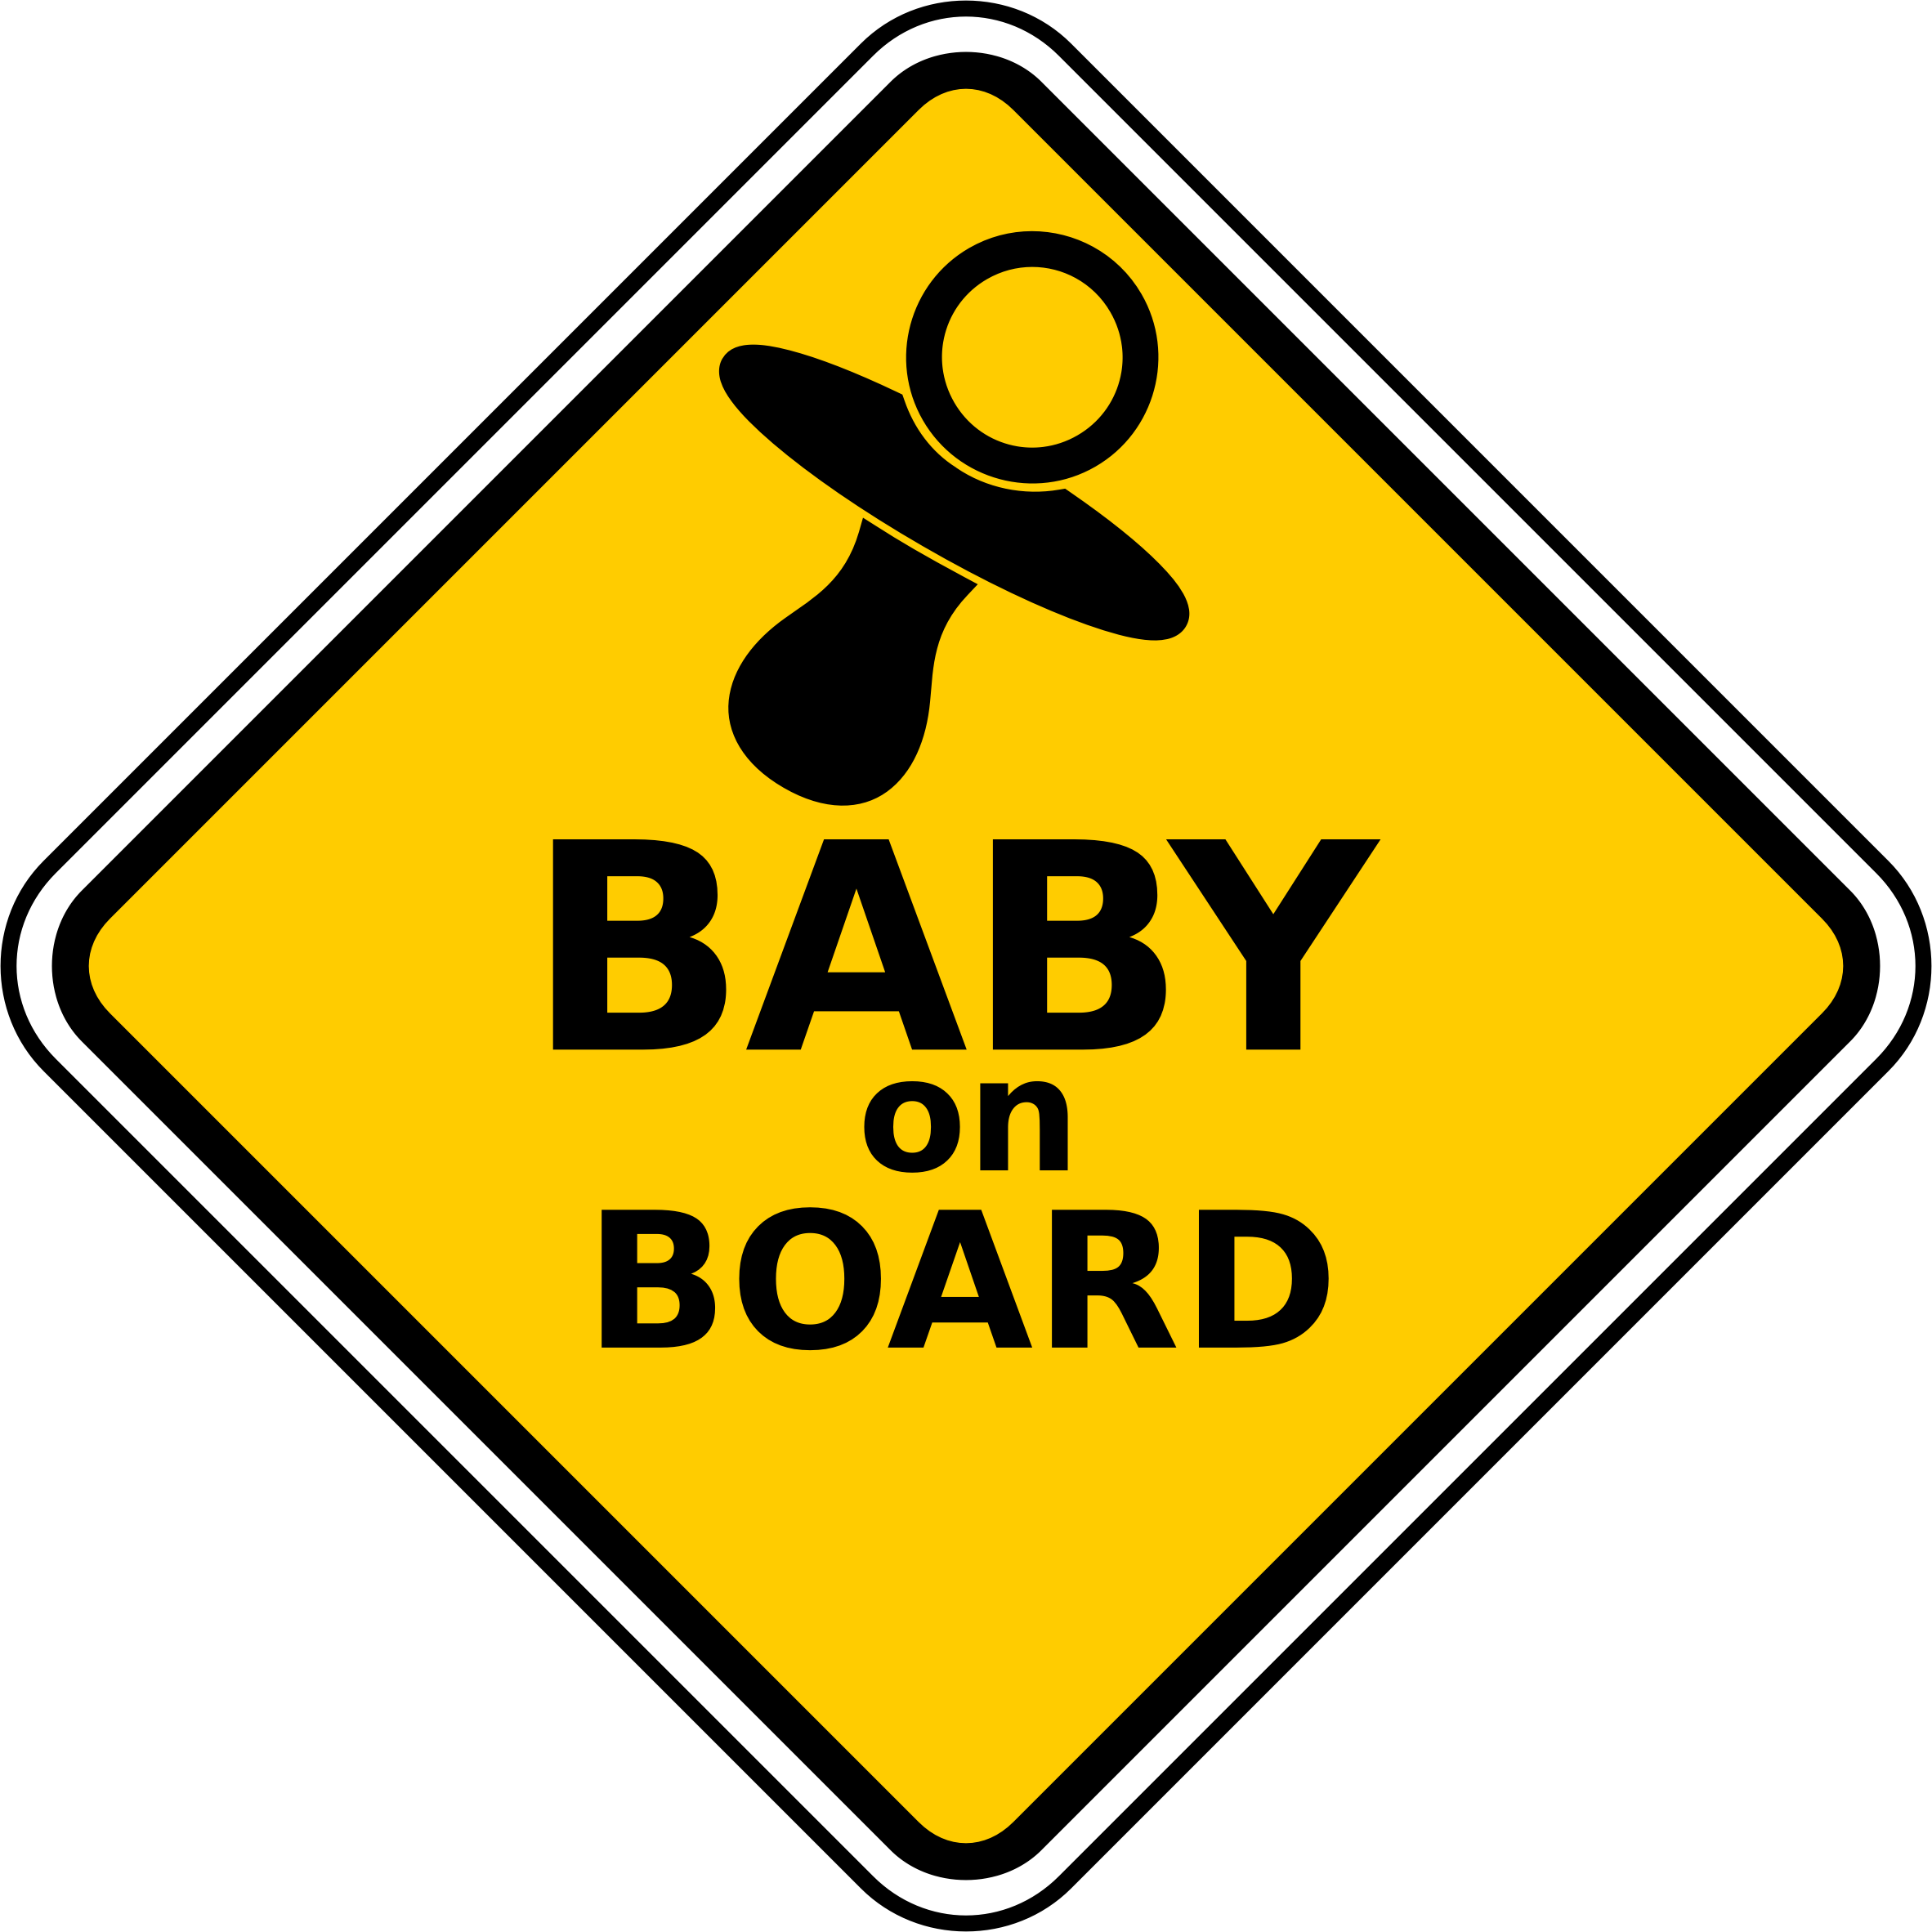 Clipart - Baby On Board